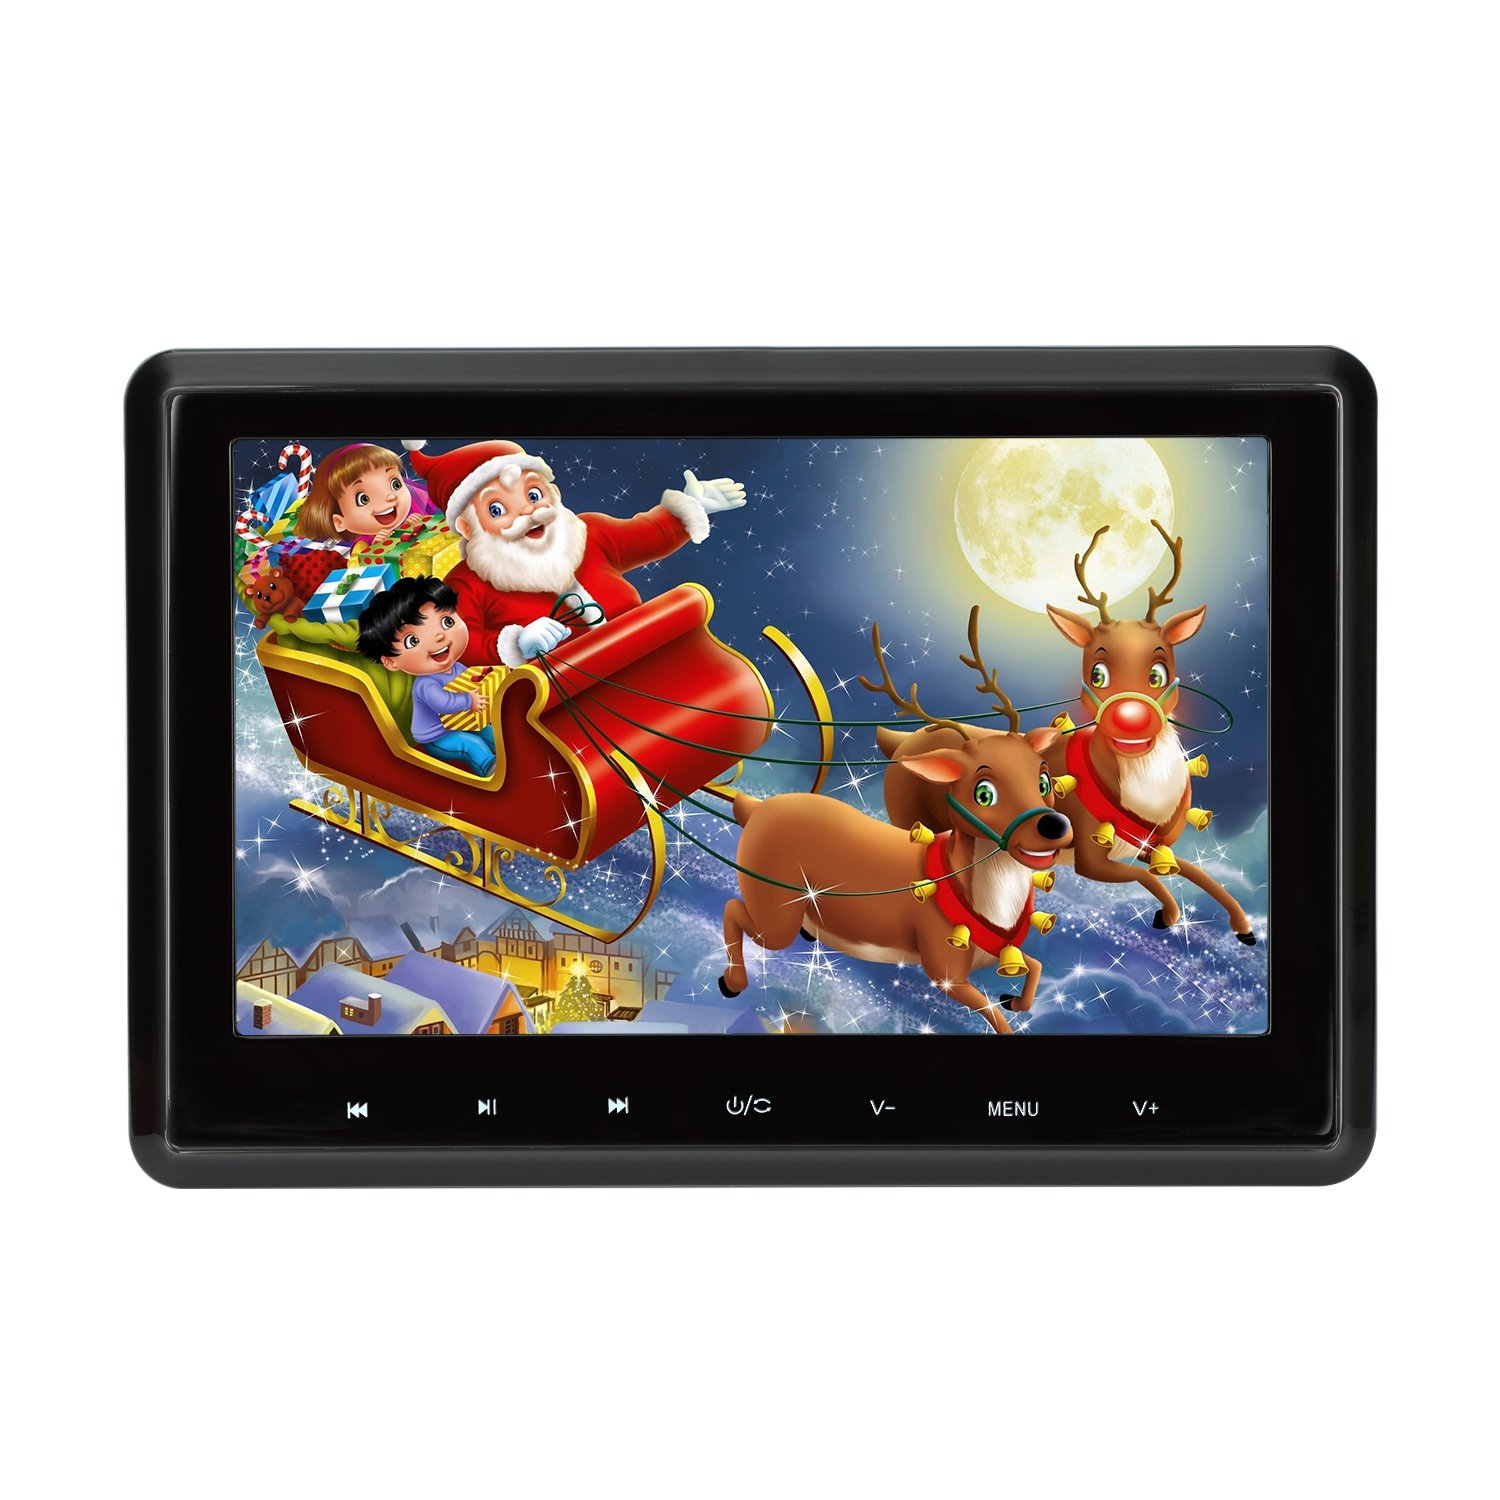 Car DVD Player 10.1 Inch 1080P HD Headrest DVD Player Monitor Auto Rear Seat Entertainment System for Long Car Travel Support DVD VCD CD SD USB FM HDMI (CLZ101HD)